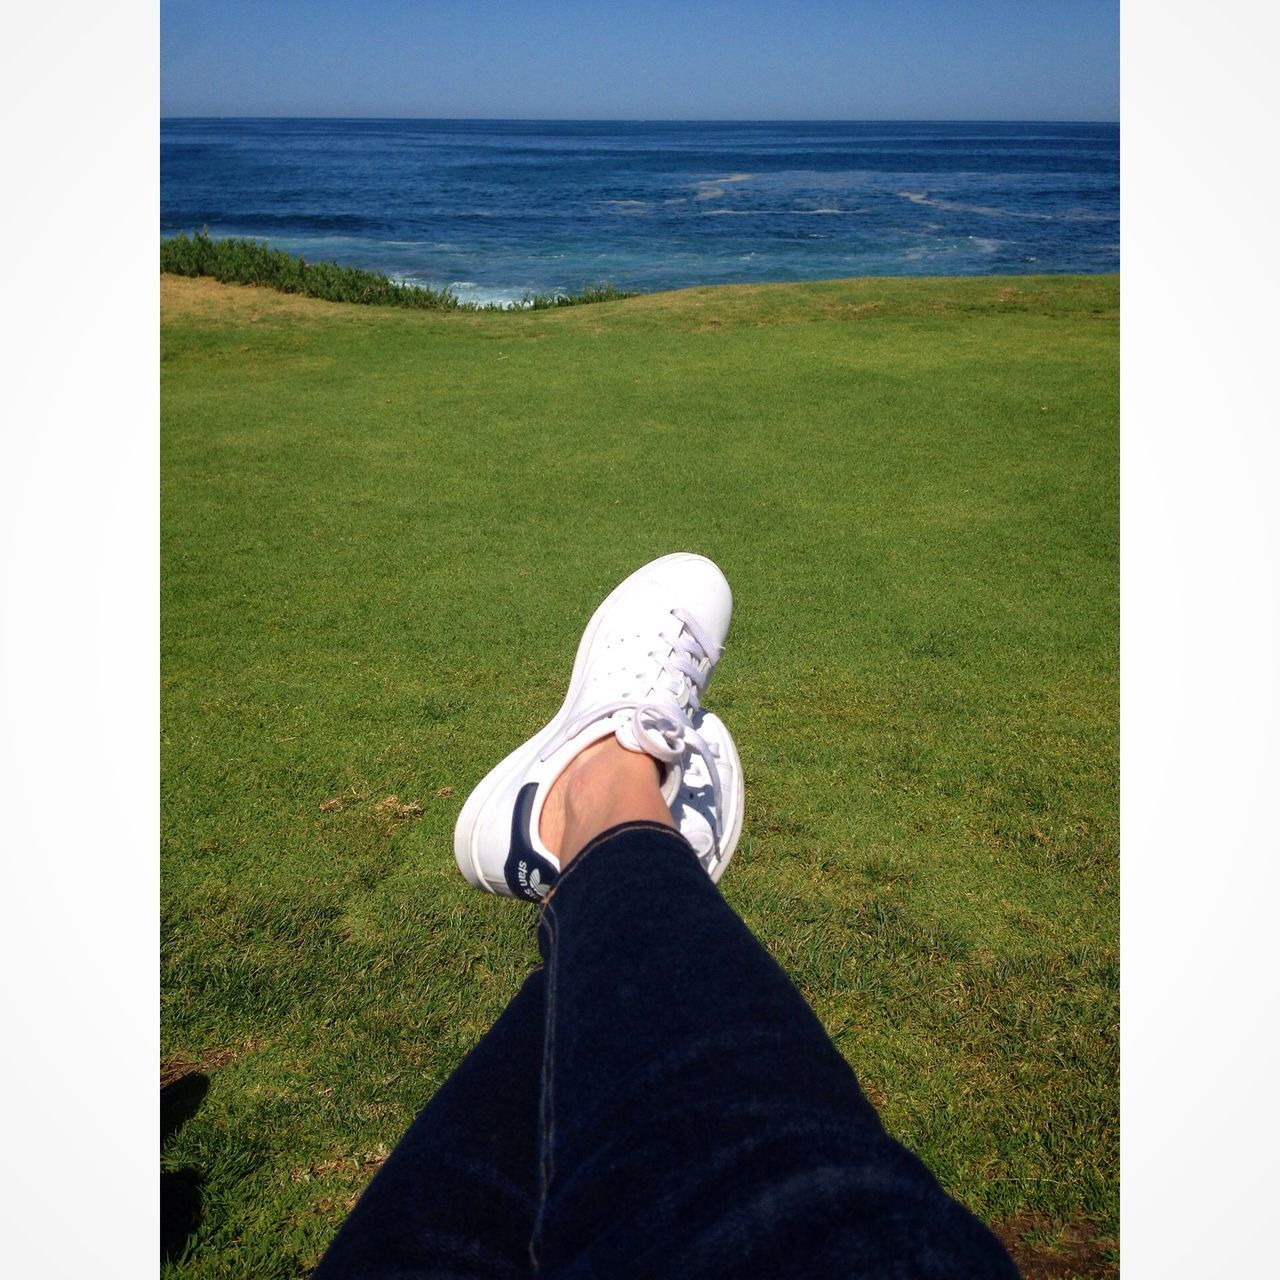 grass, low section, human leg, shoe, personal perspective, one person, day, real people, human body part, leisure activity, sea, standing, outdoors, green color, nature, horizon over water, water, sitting, men, golf, beauty in nature, close-up, sky, golf course, people